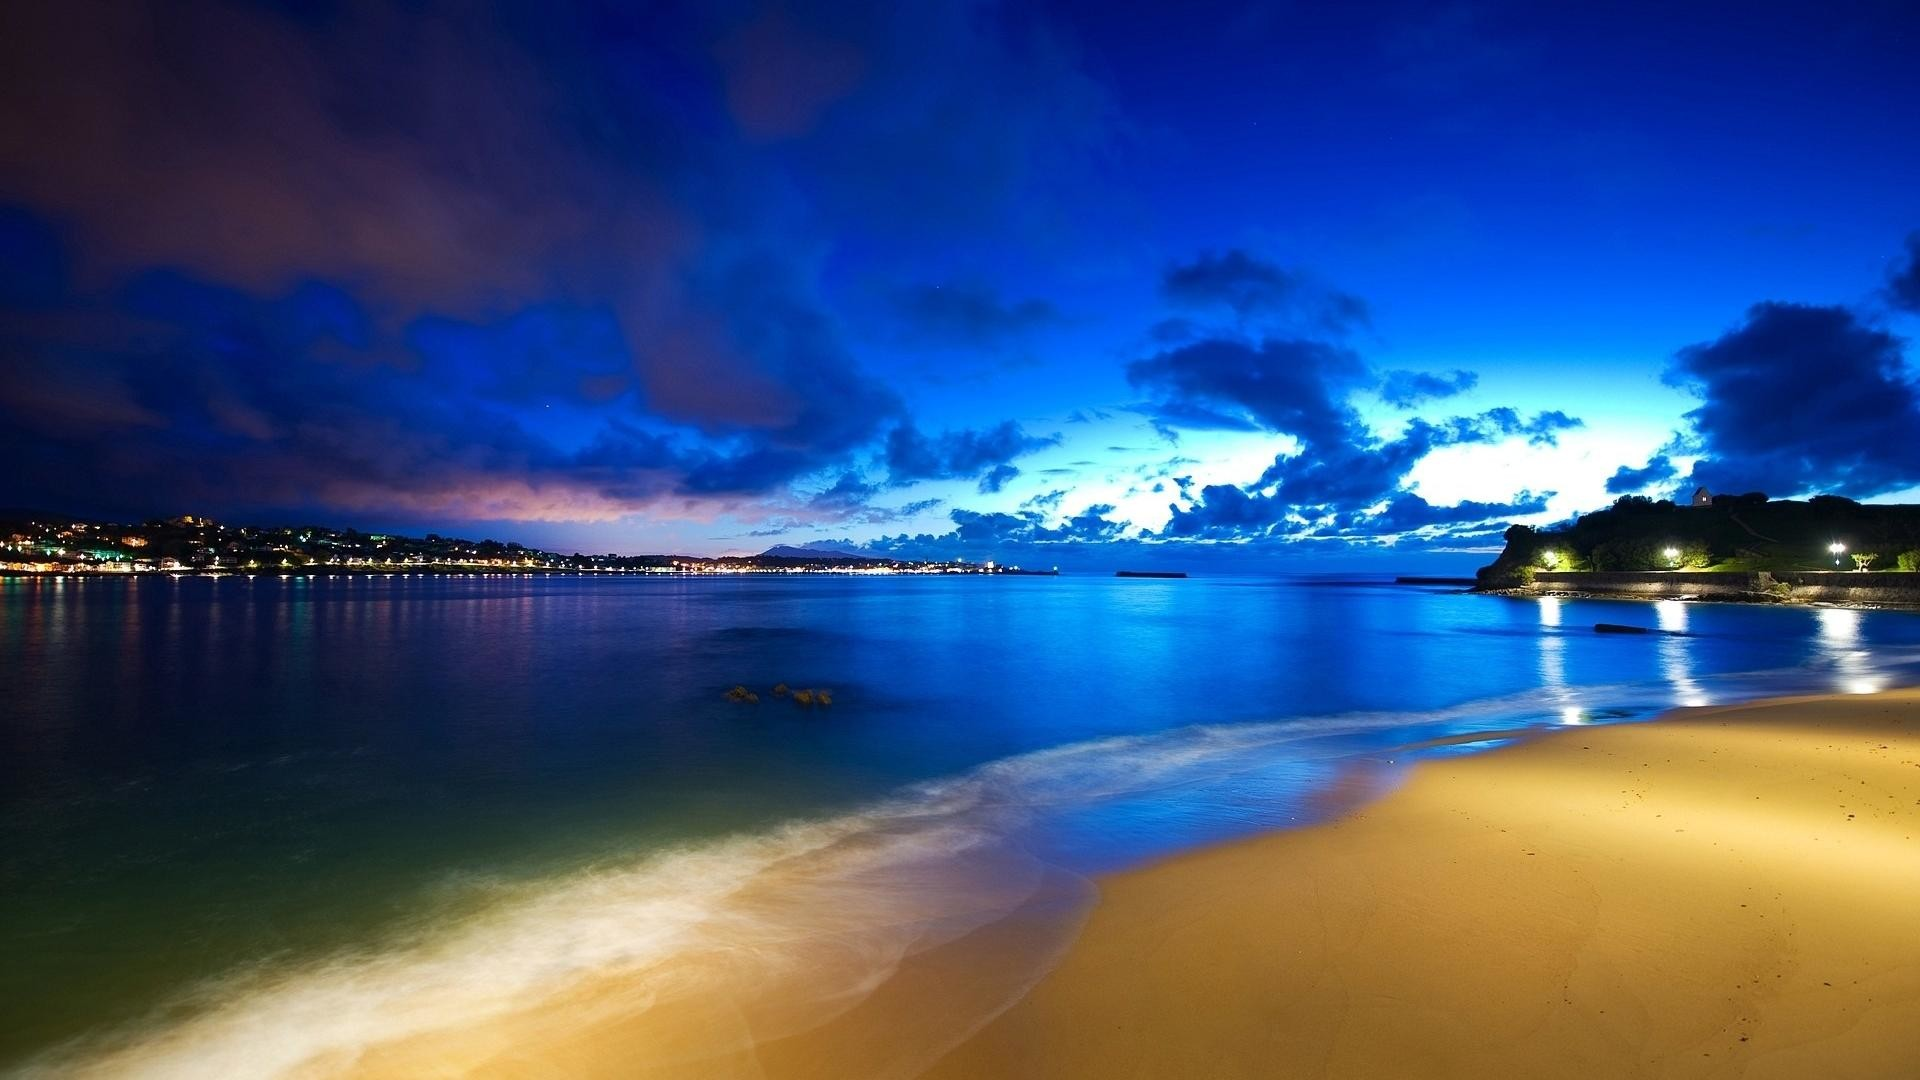 Res: 1920x1080, undefined Scenic Wallpaper (42 Wallpapers) | Adorable Wallpapers